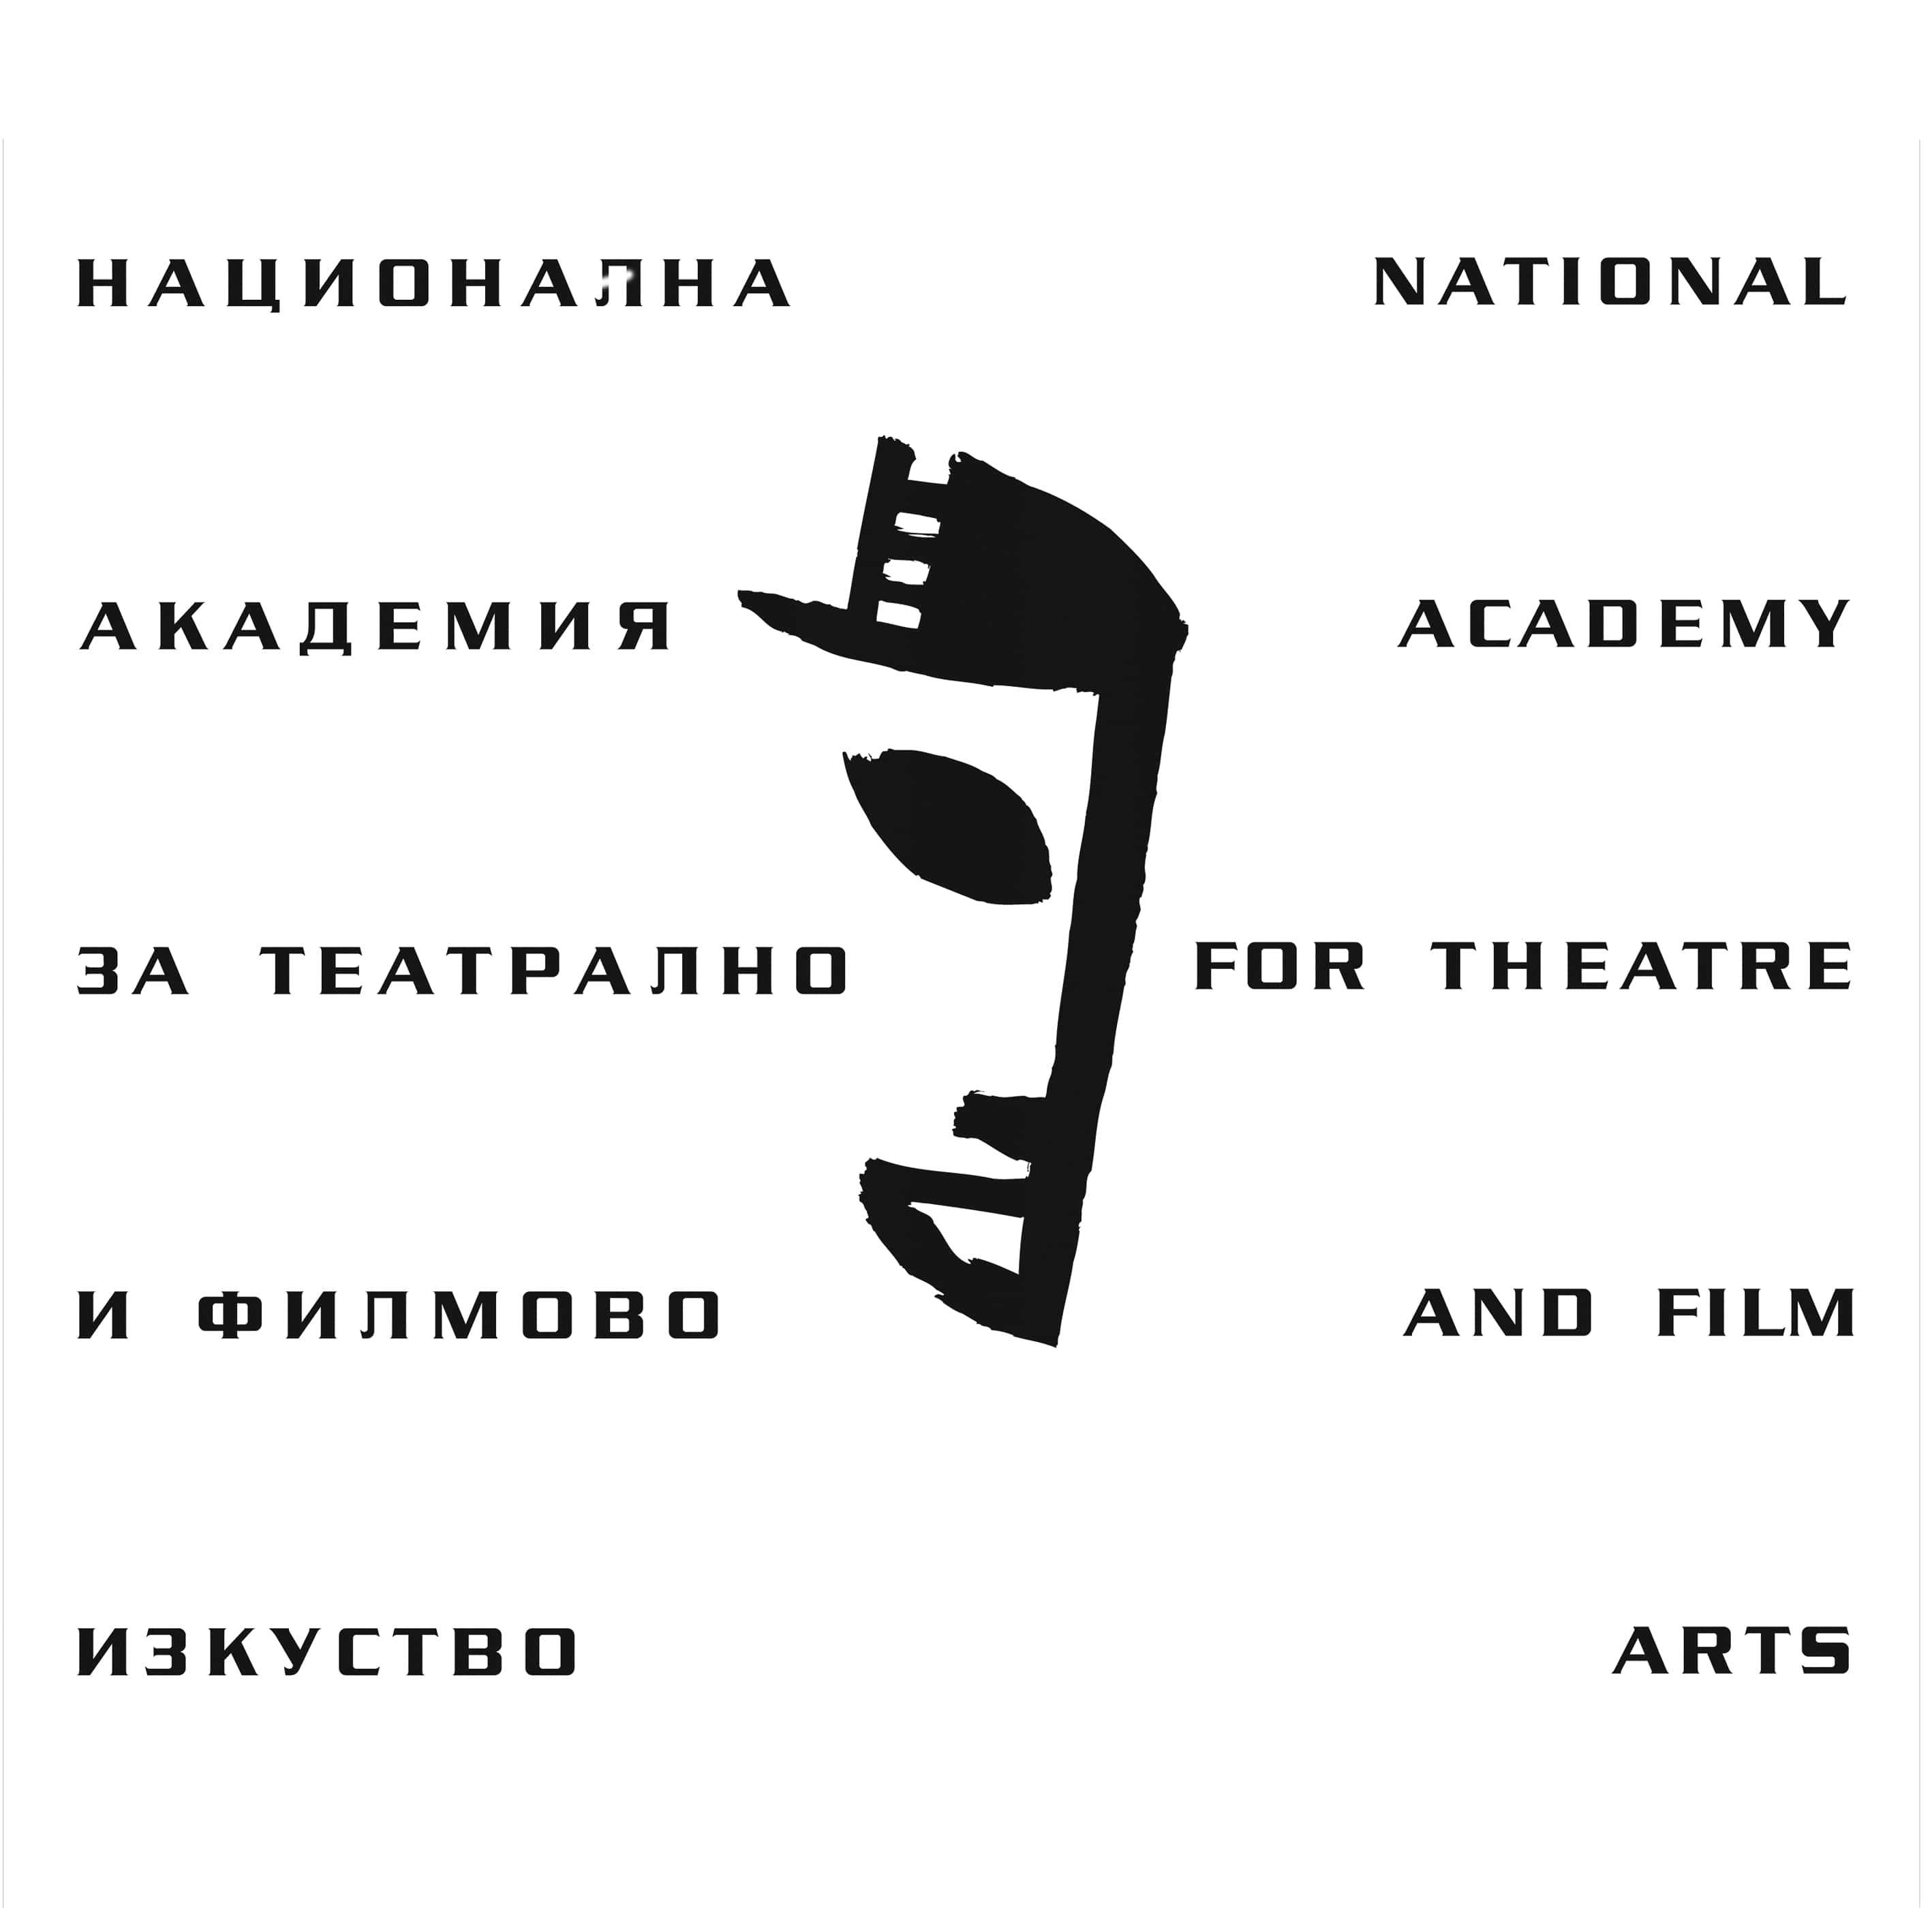 Снимки от представления Архиви - Krastyo Sarafov National Academy for Theatre and Film Arts